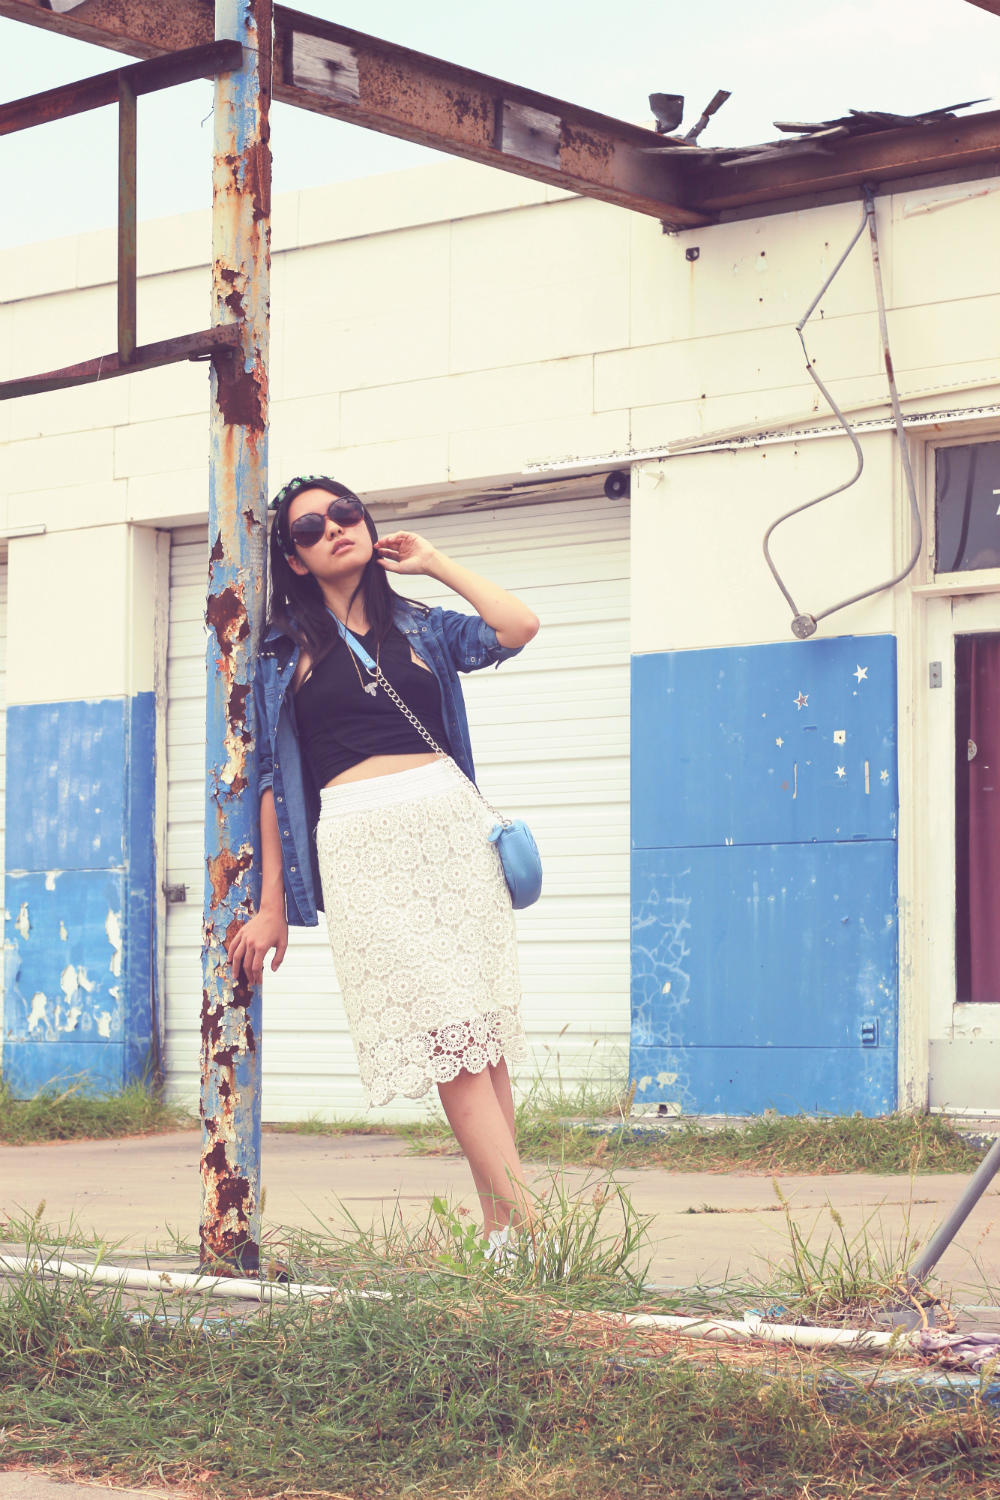 Vintage Gas Station: Chambray top over black cross over crop top and midi lace skirt